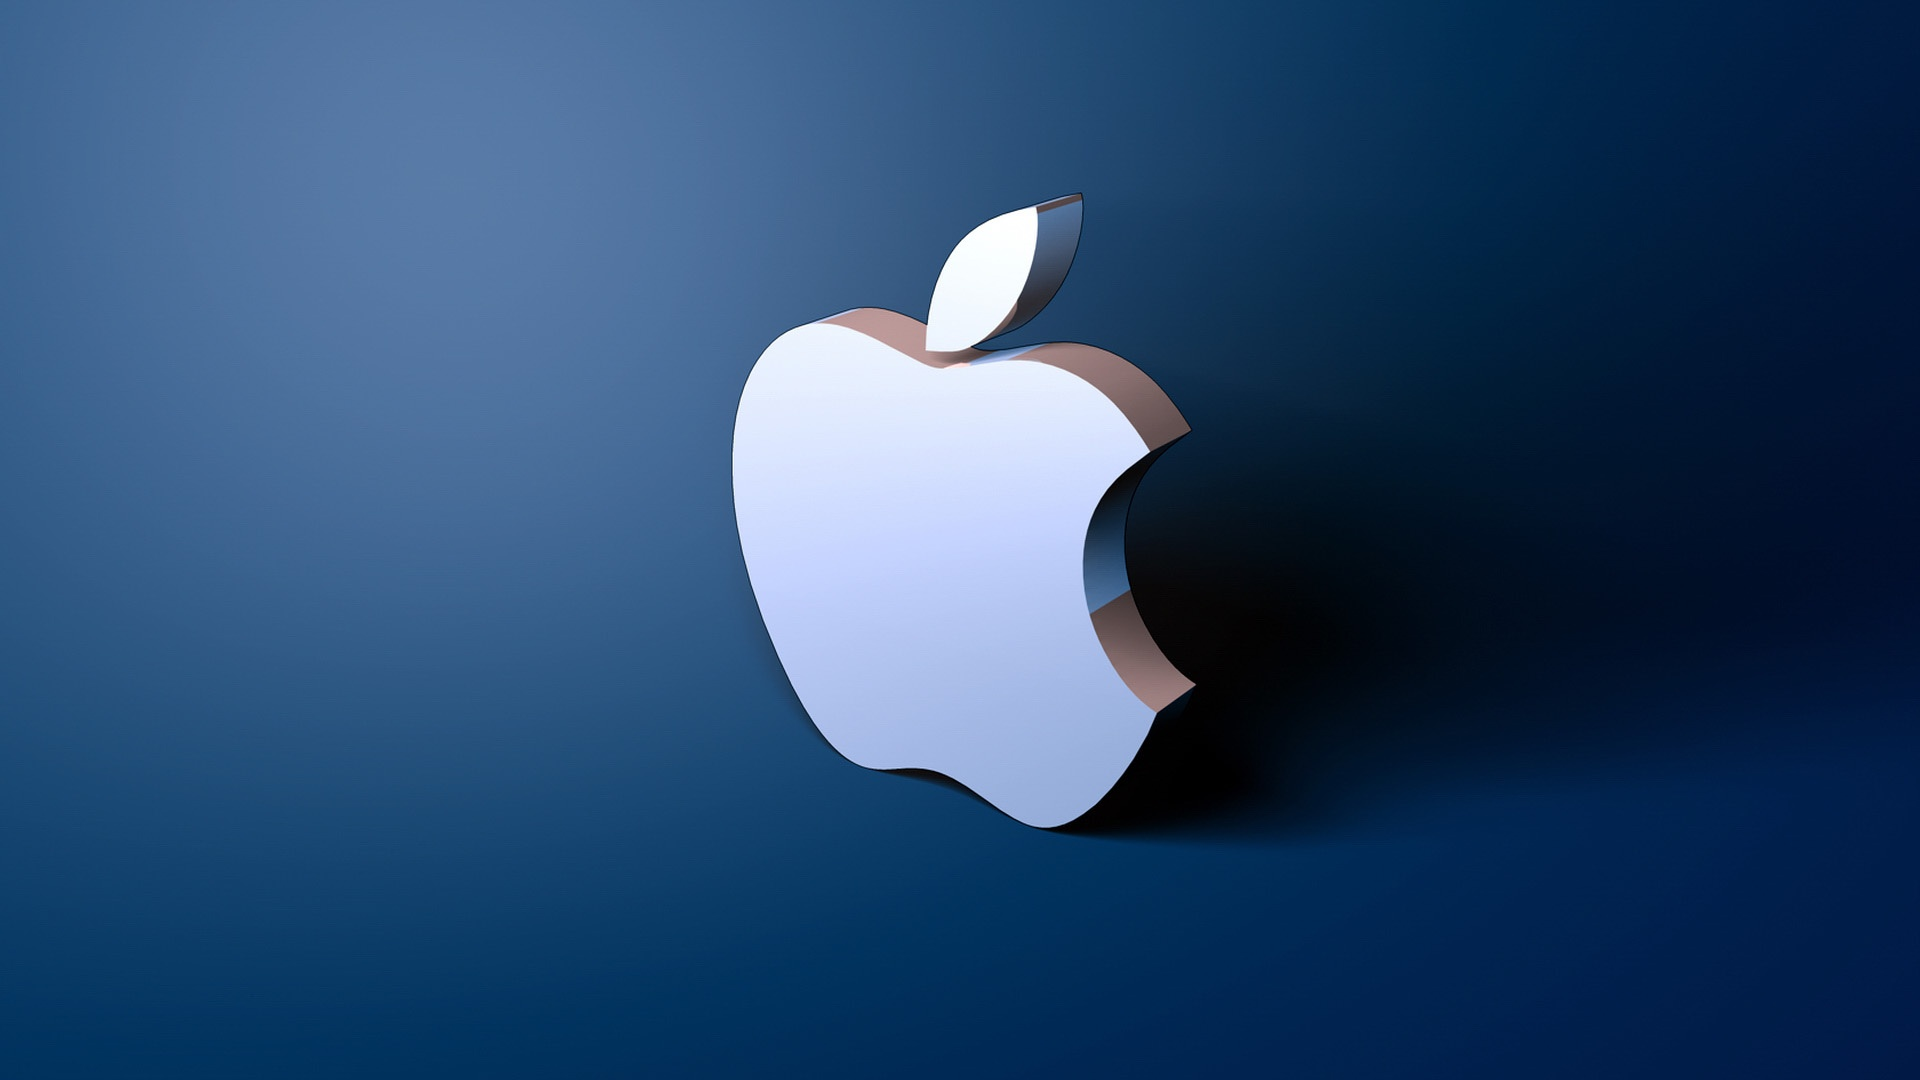 Download Apple Logo Design HD Wallpaper Download Apple Logo Design 1920x1080